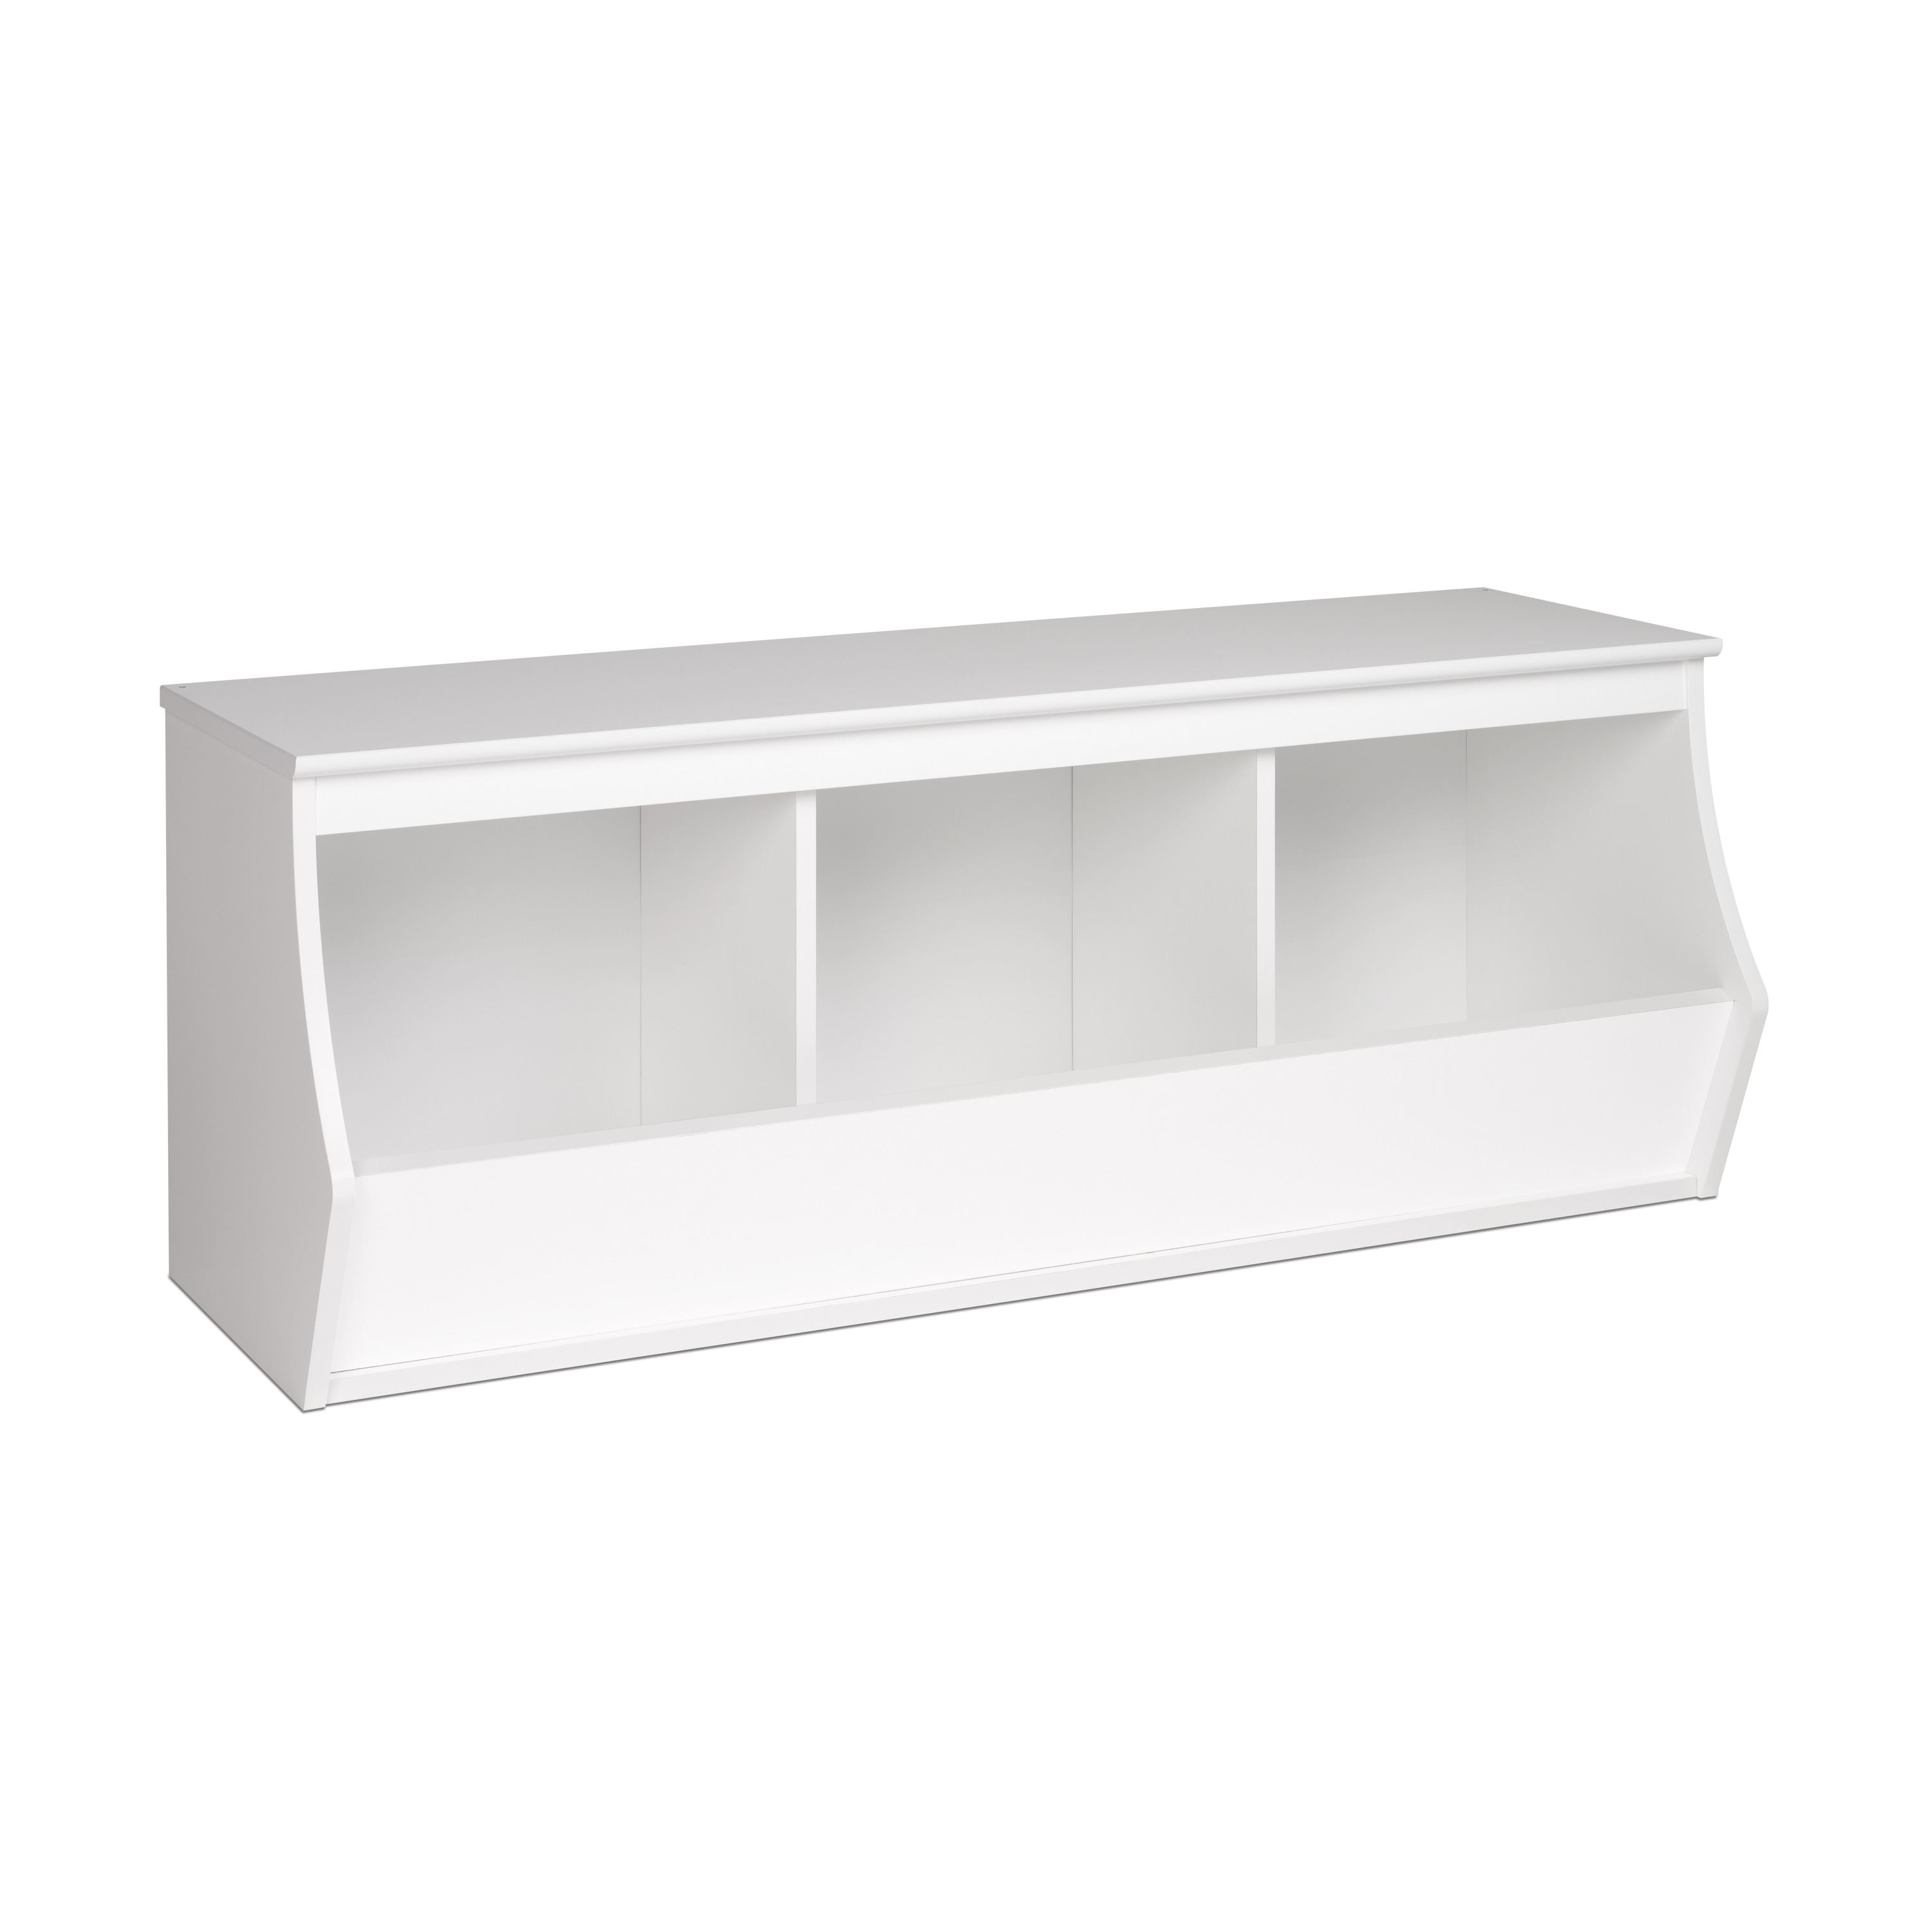 Shop Stackable 3 Bin Storage Cubby   Free Shipping Today   Overstock.com    10085643